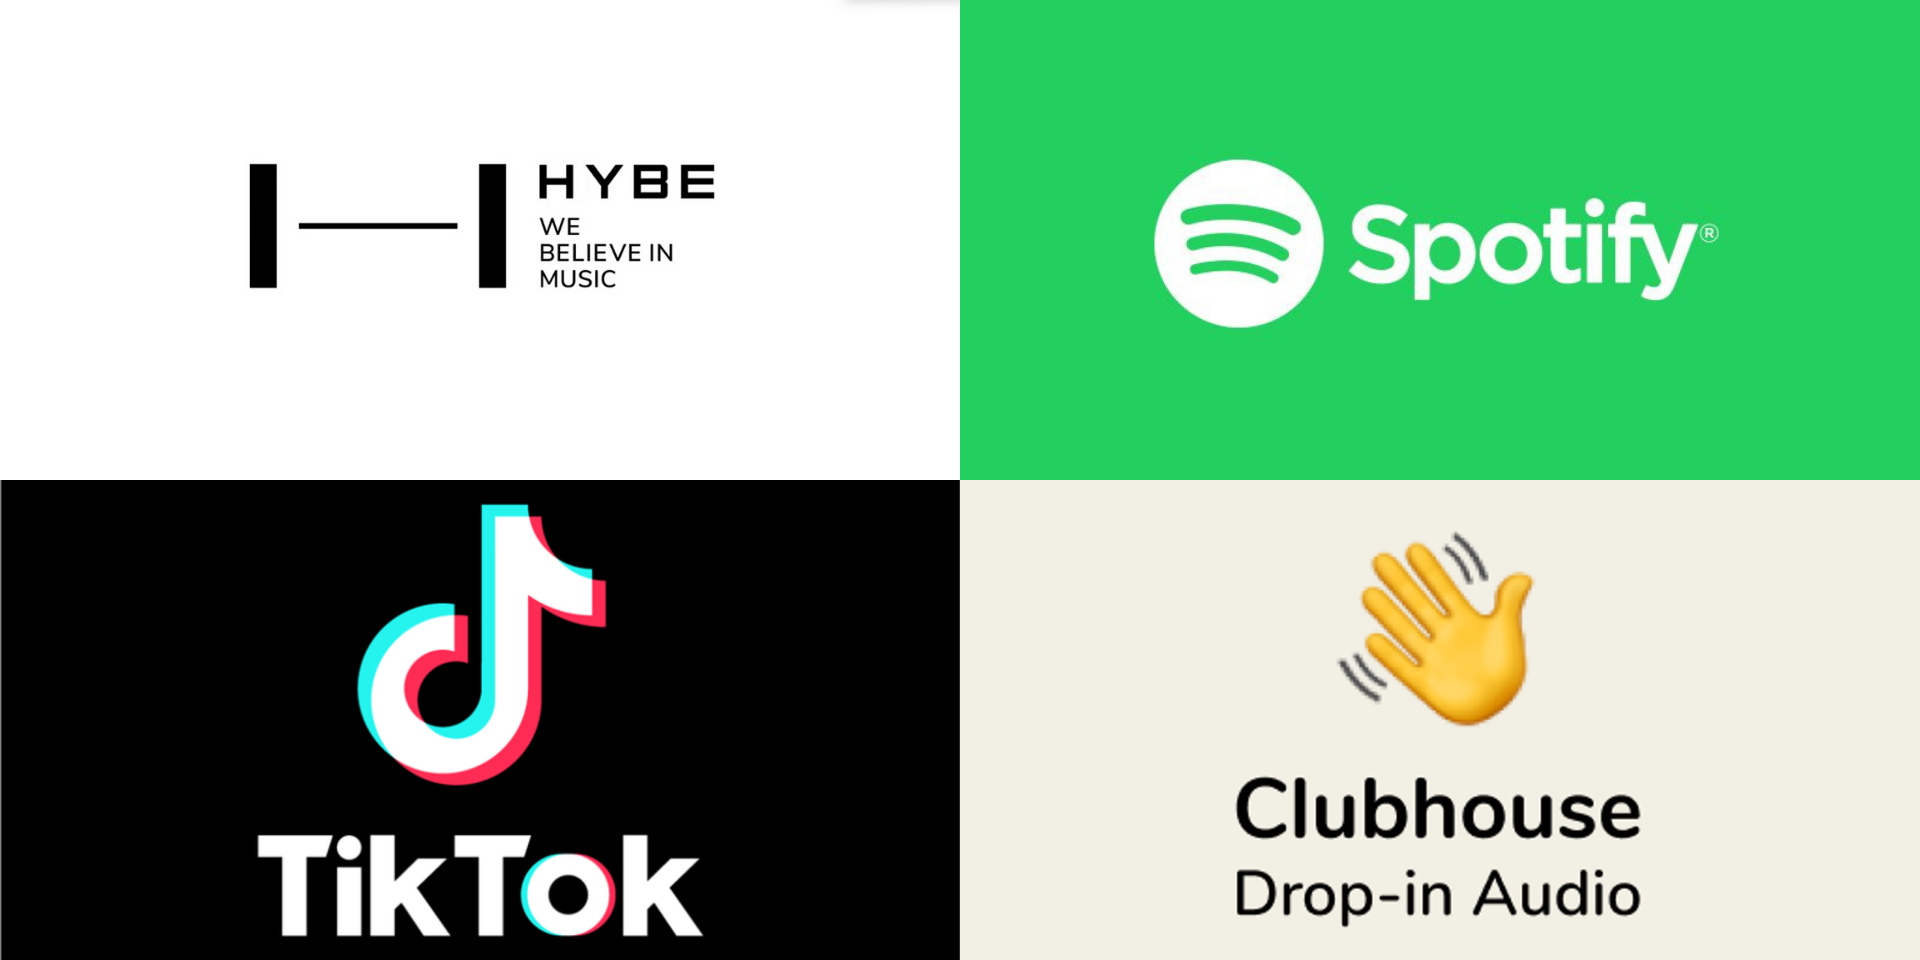 HYBE, TikTok, Twitter, Spotify, Clubhouse, and more make it onto TIME's 100 Most Influential Companies